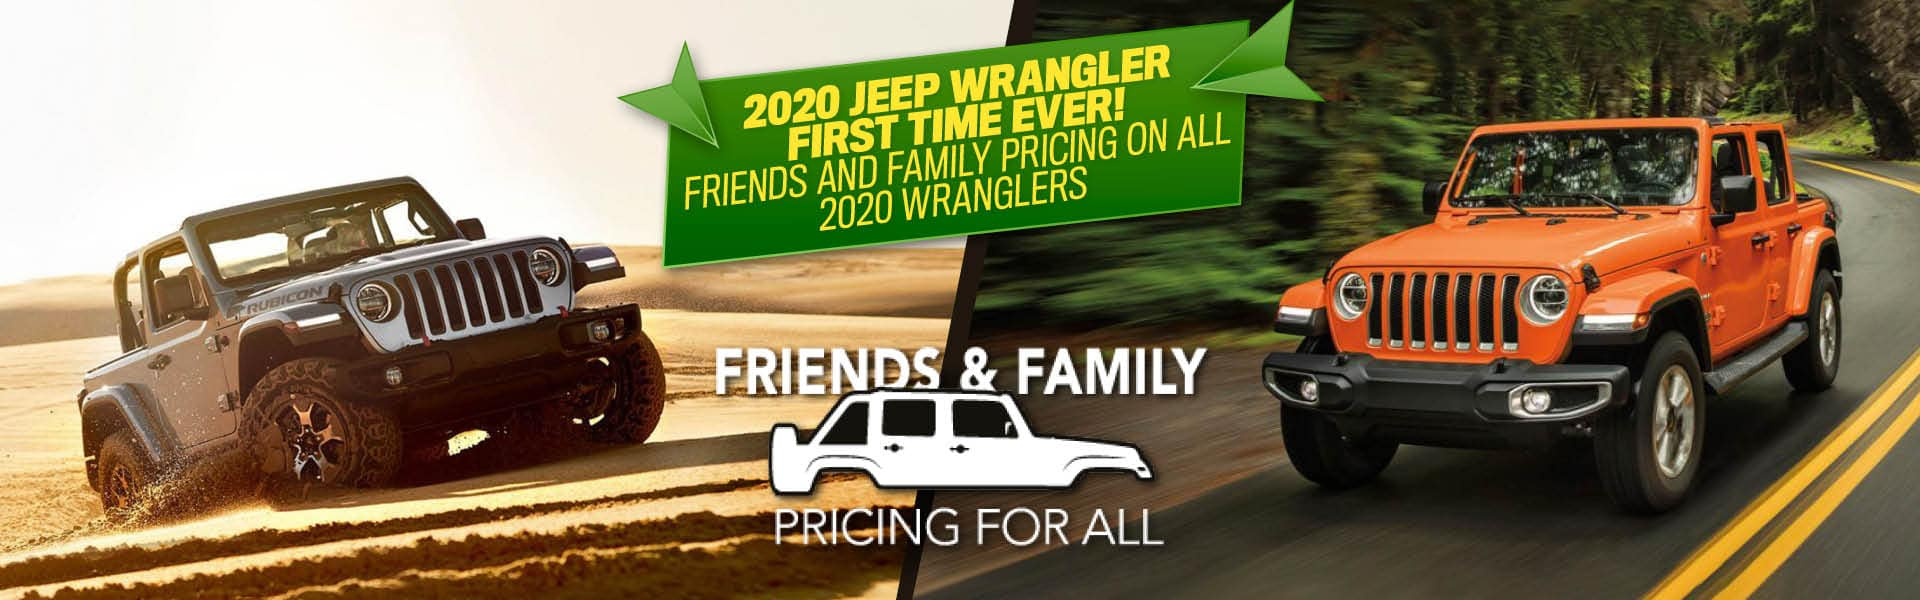 New Jeep Wrangler for Sale in Chambersburg, PA